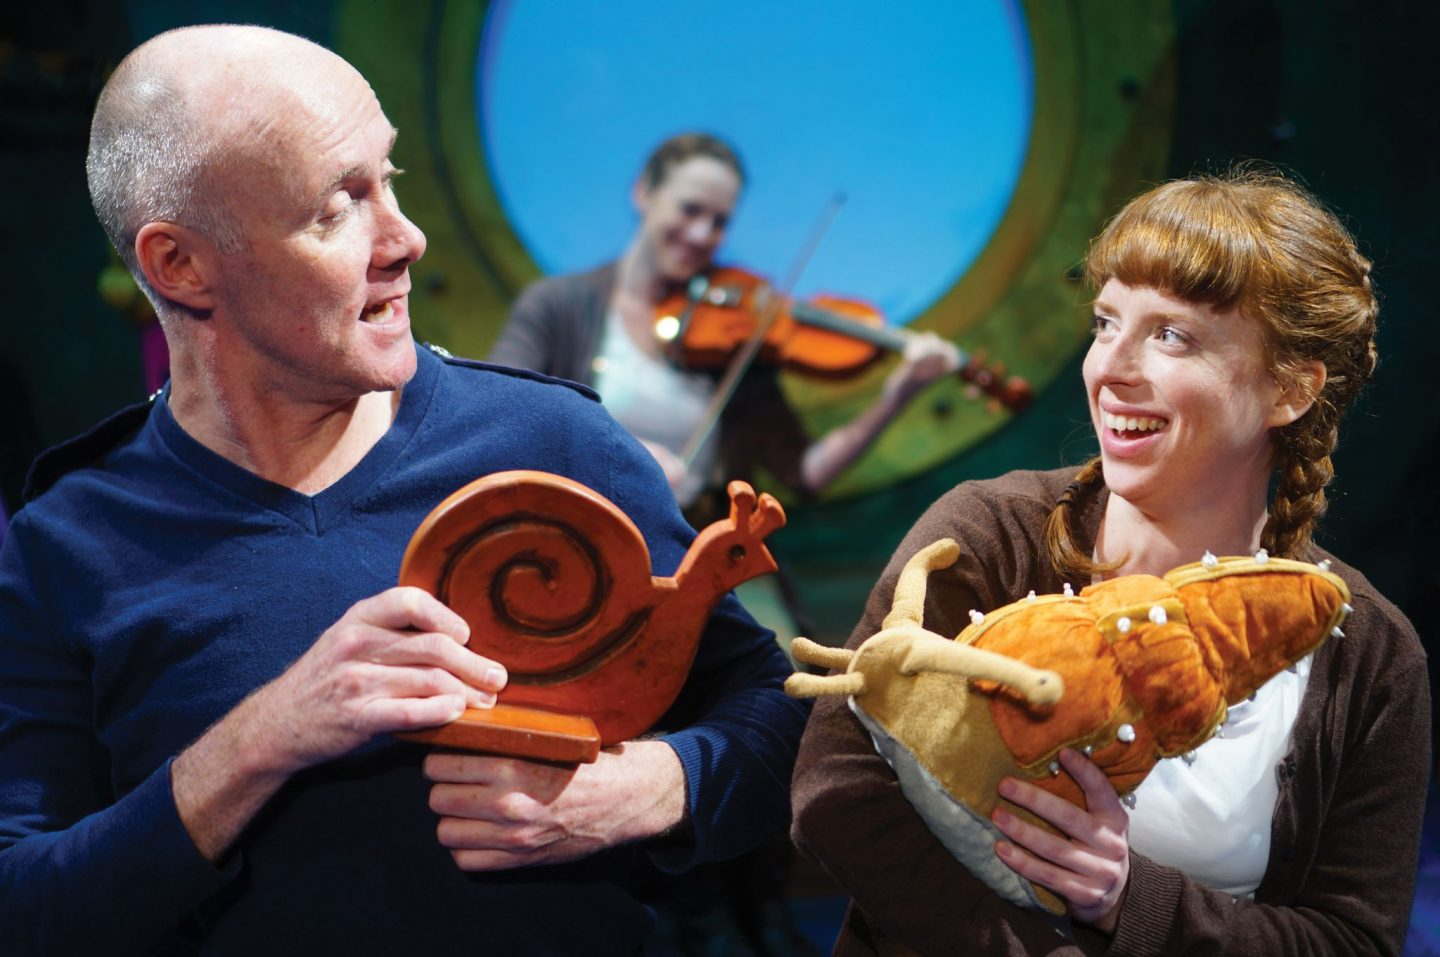 Julia Donaldson's Snail and the Whale is set for Stafford Gatehouse Theatre